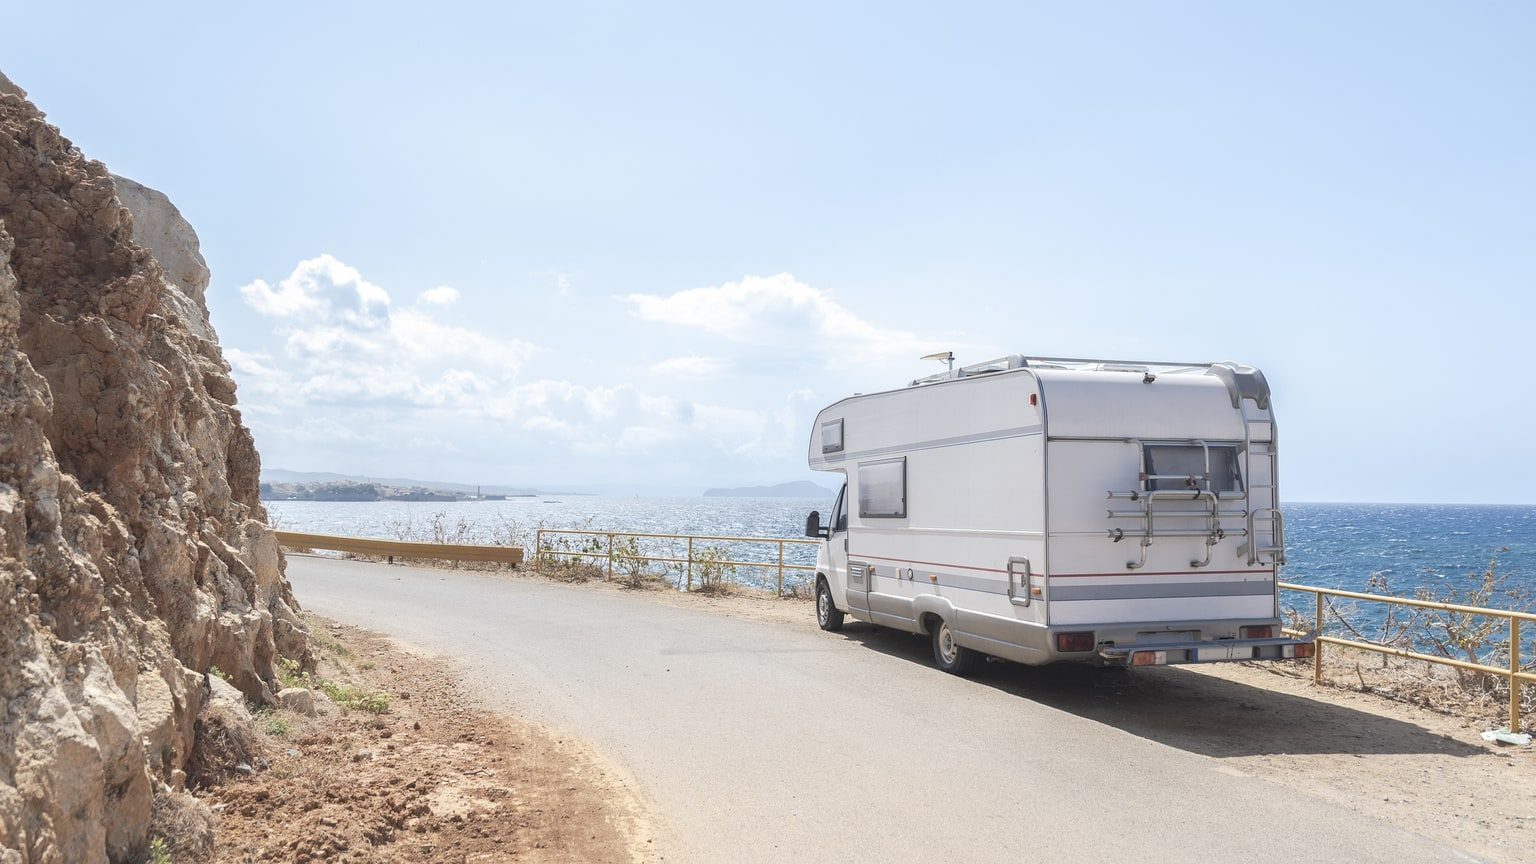 RV Parked Off Road By Sea